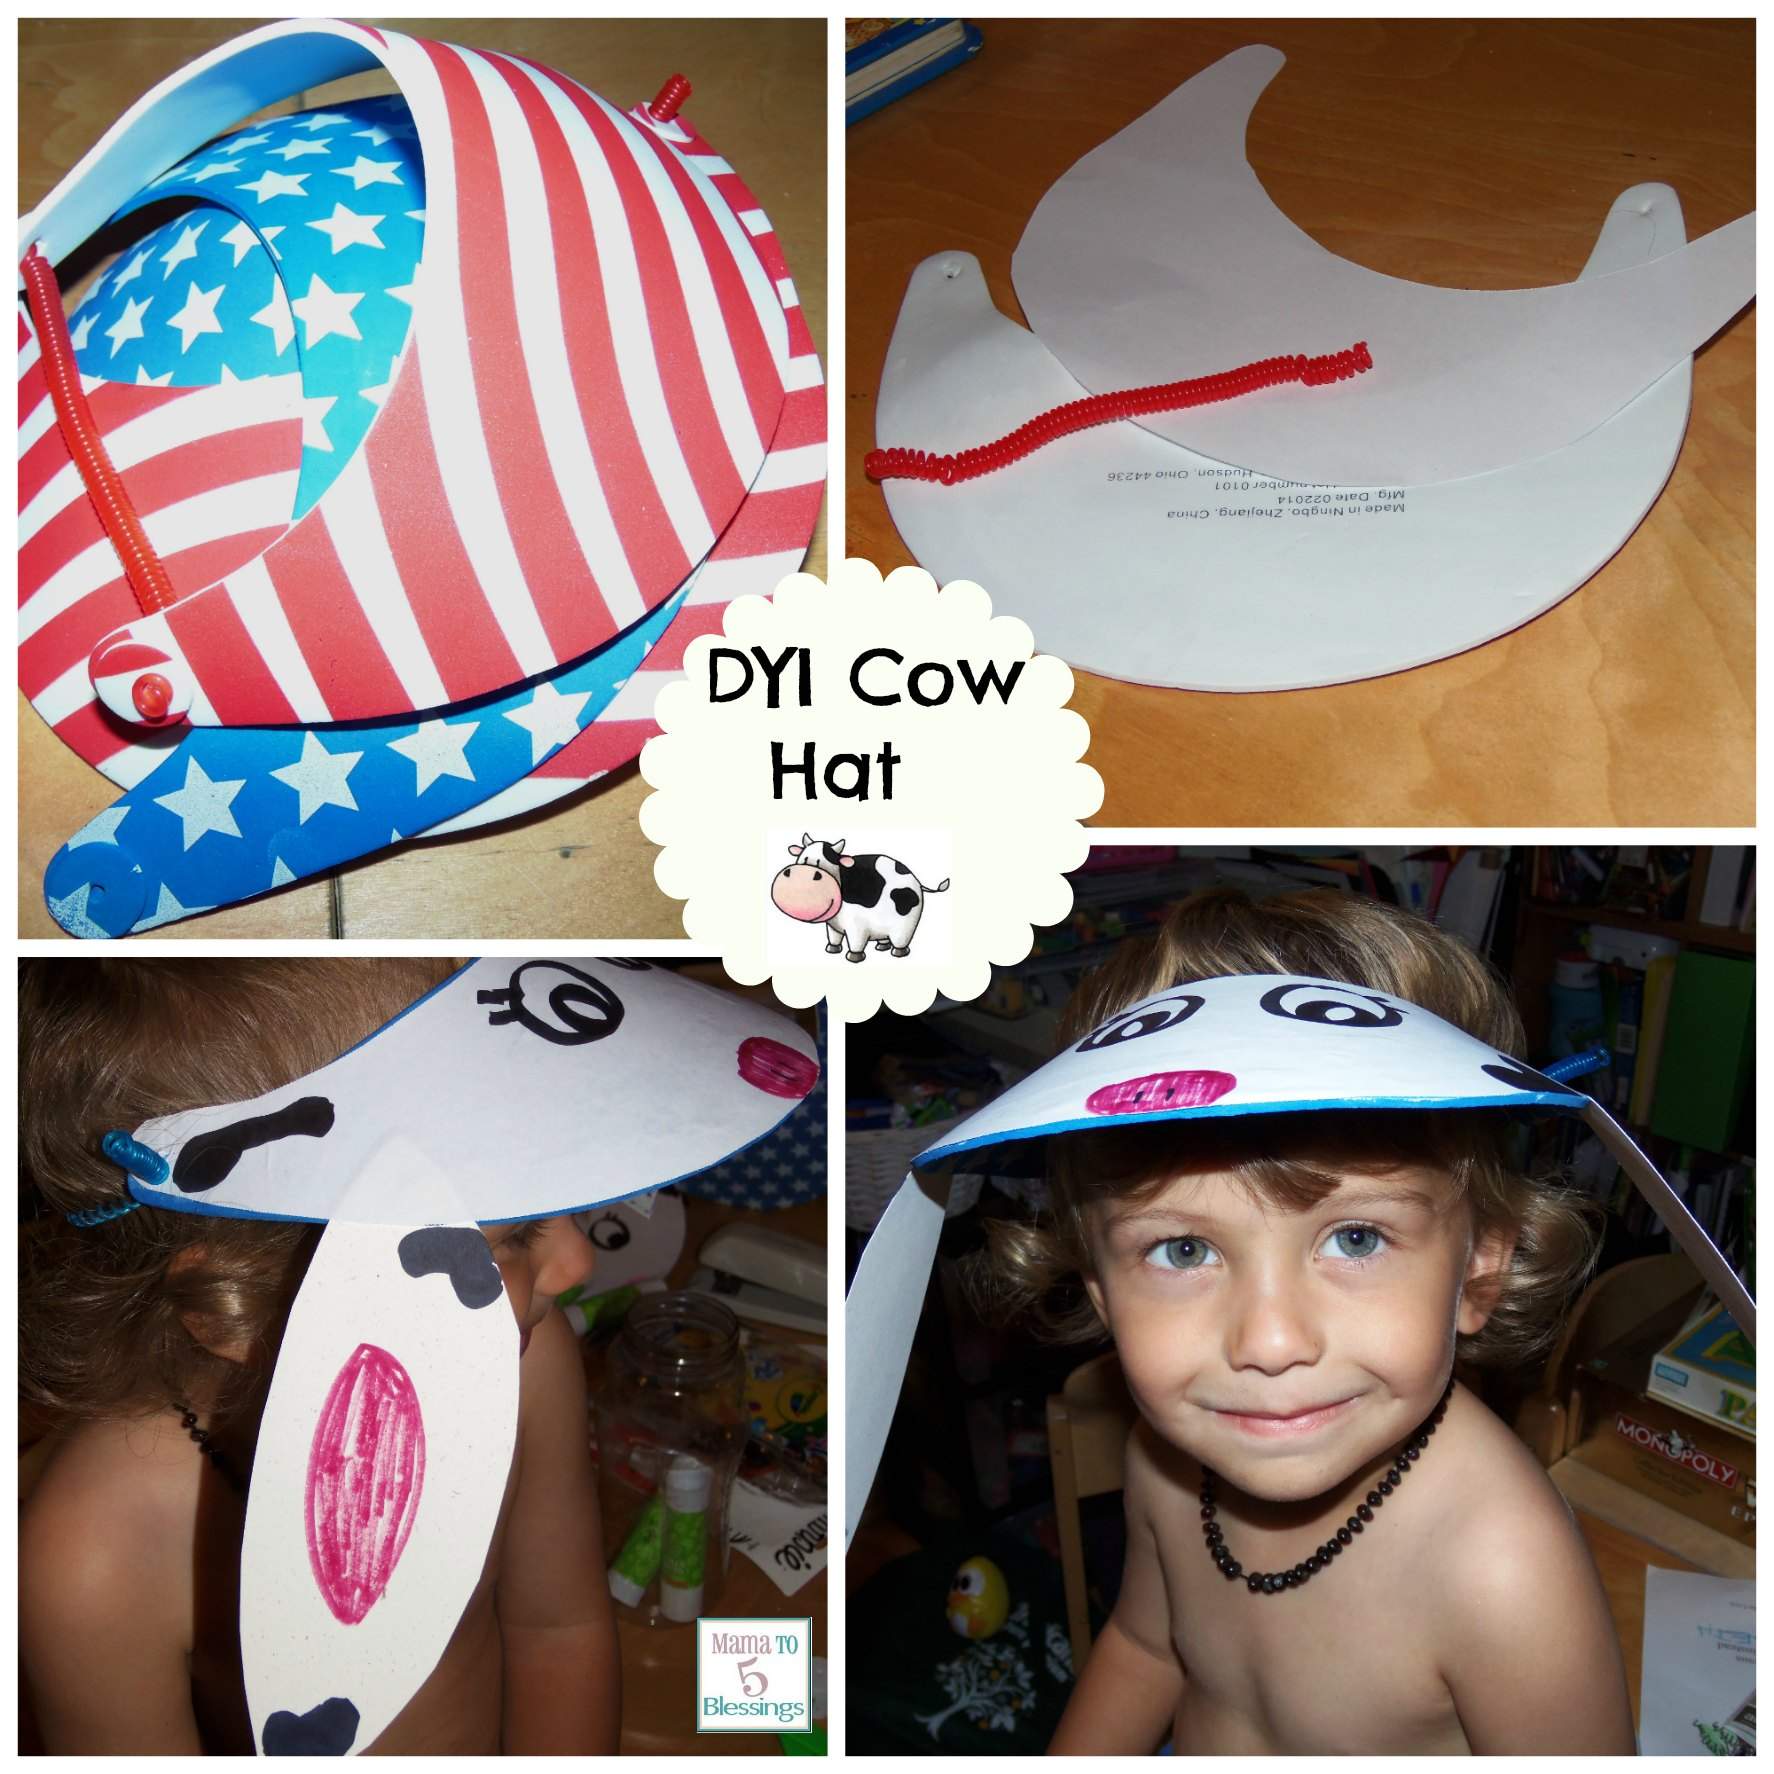 chick-fil-a cow hat collage use